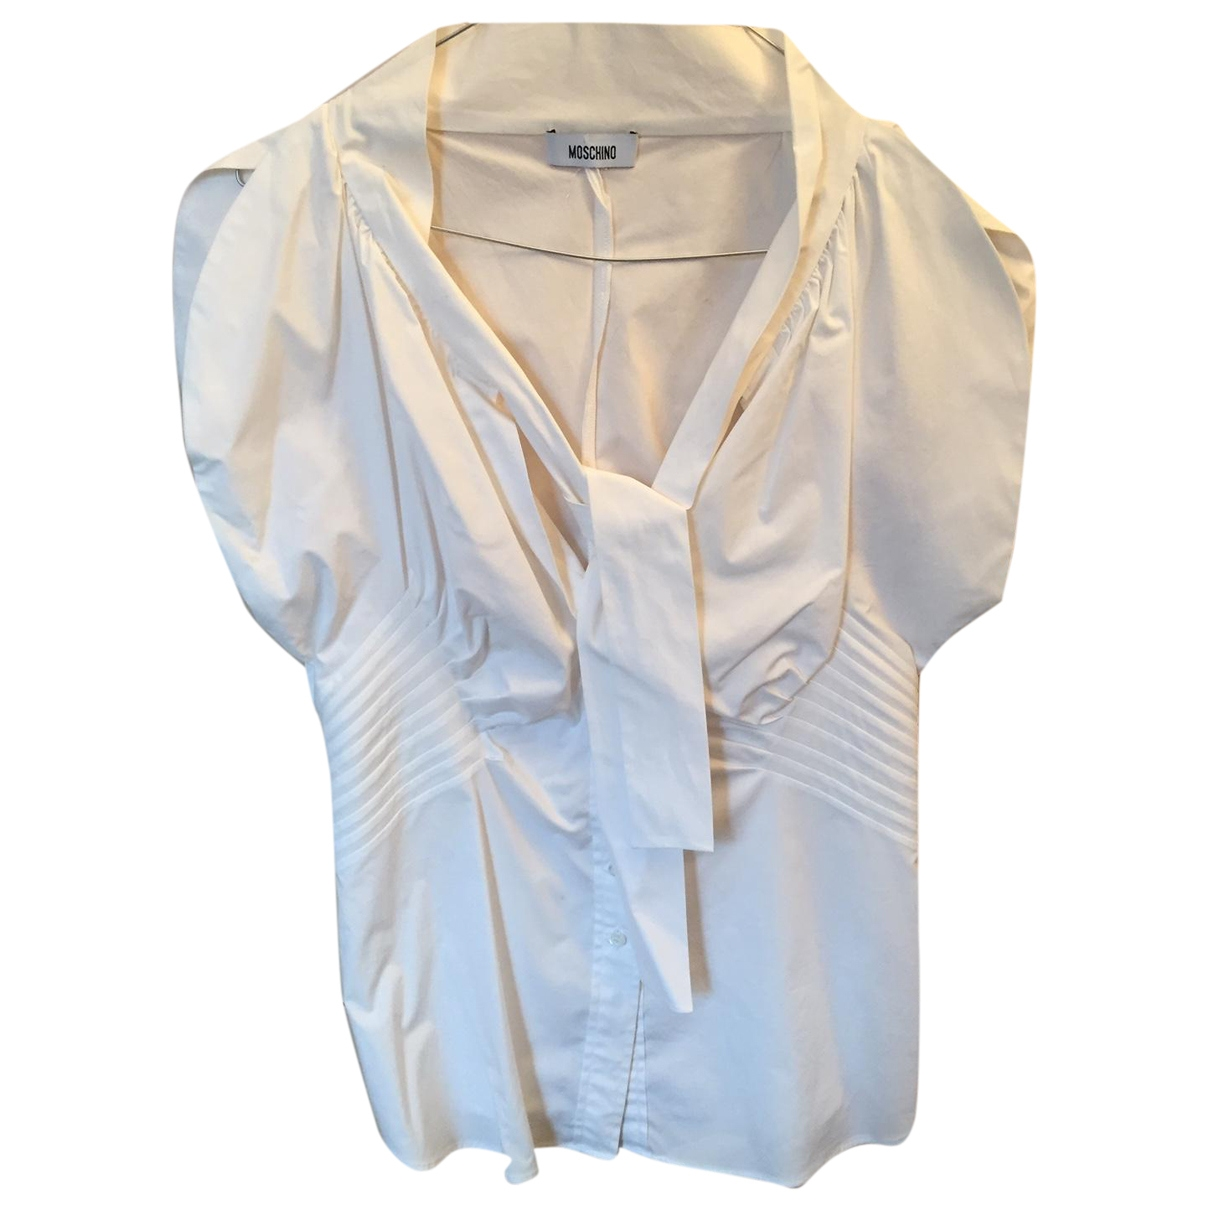 Moschino \N White Cotton  top for Women 44 IT